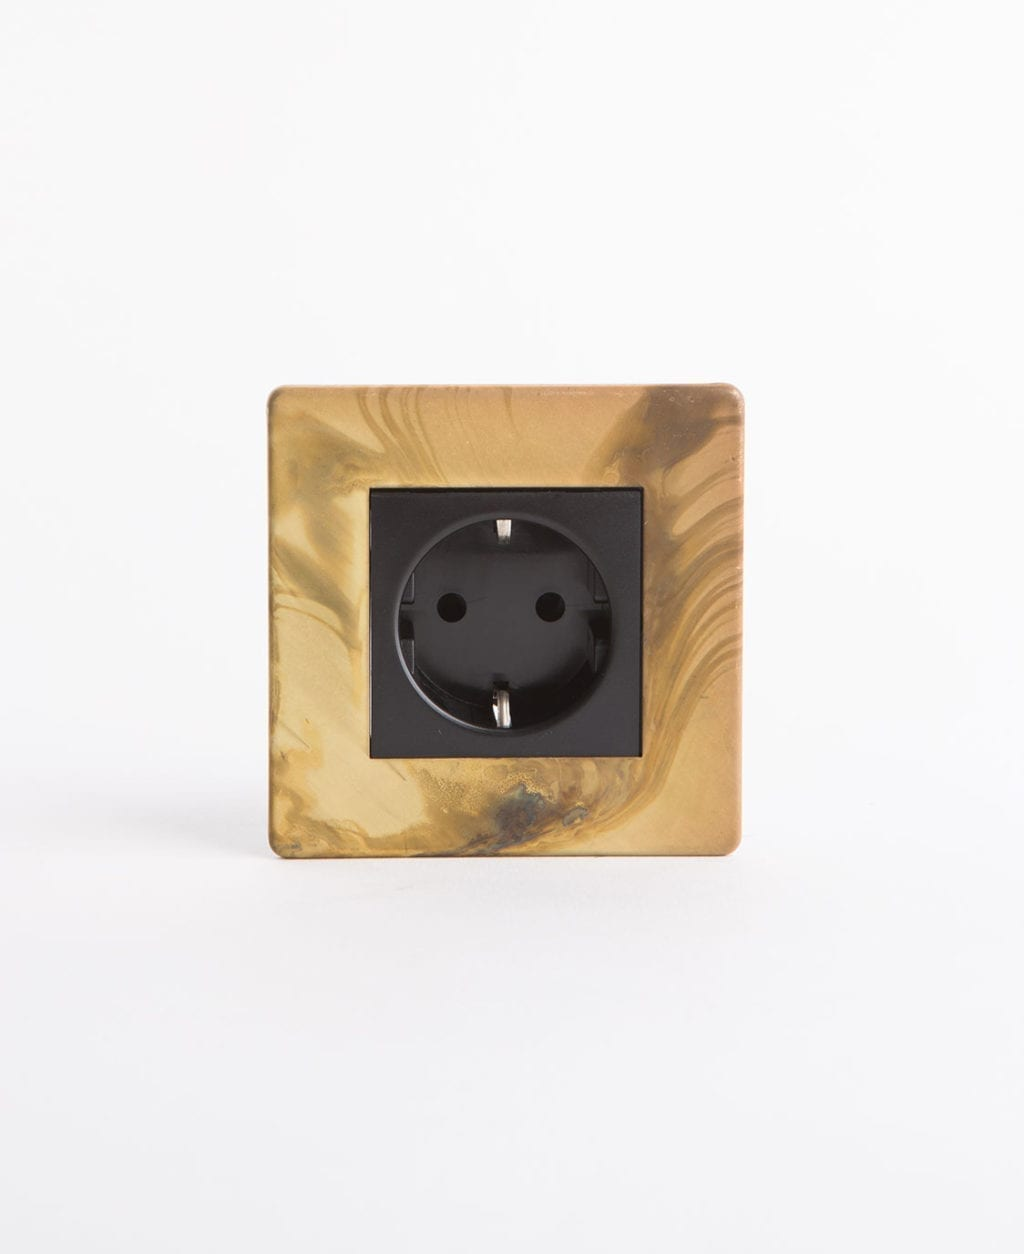 gold Schuko single socket with black insert